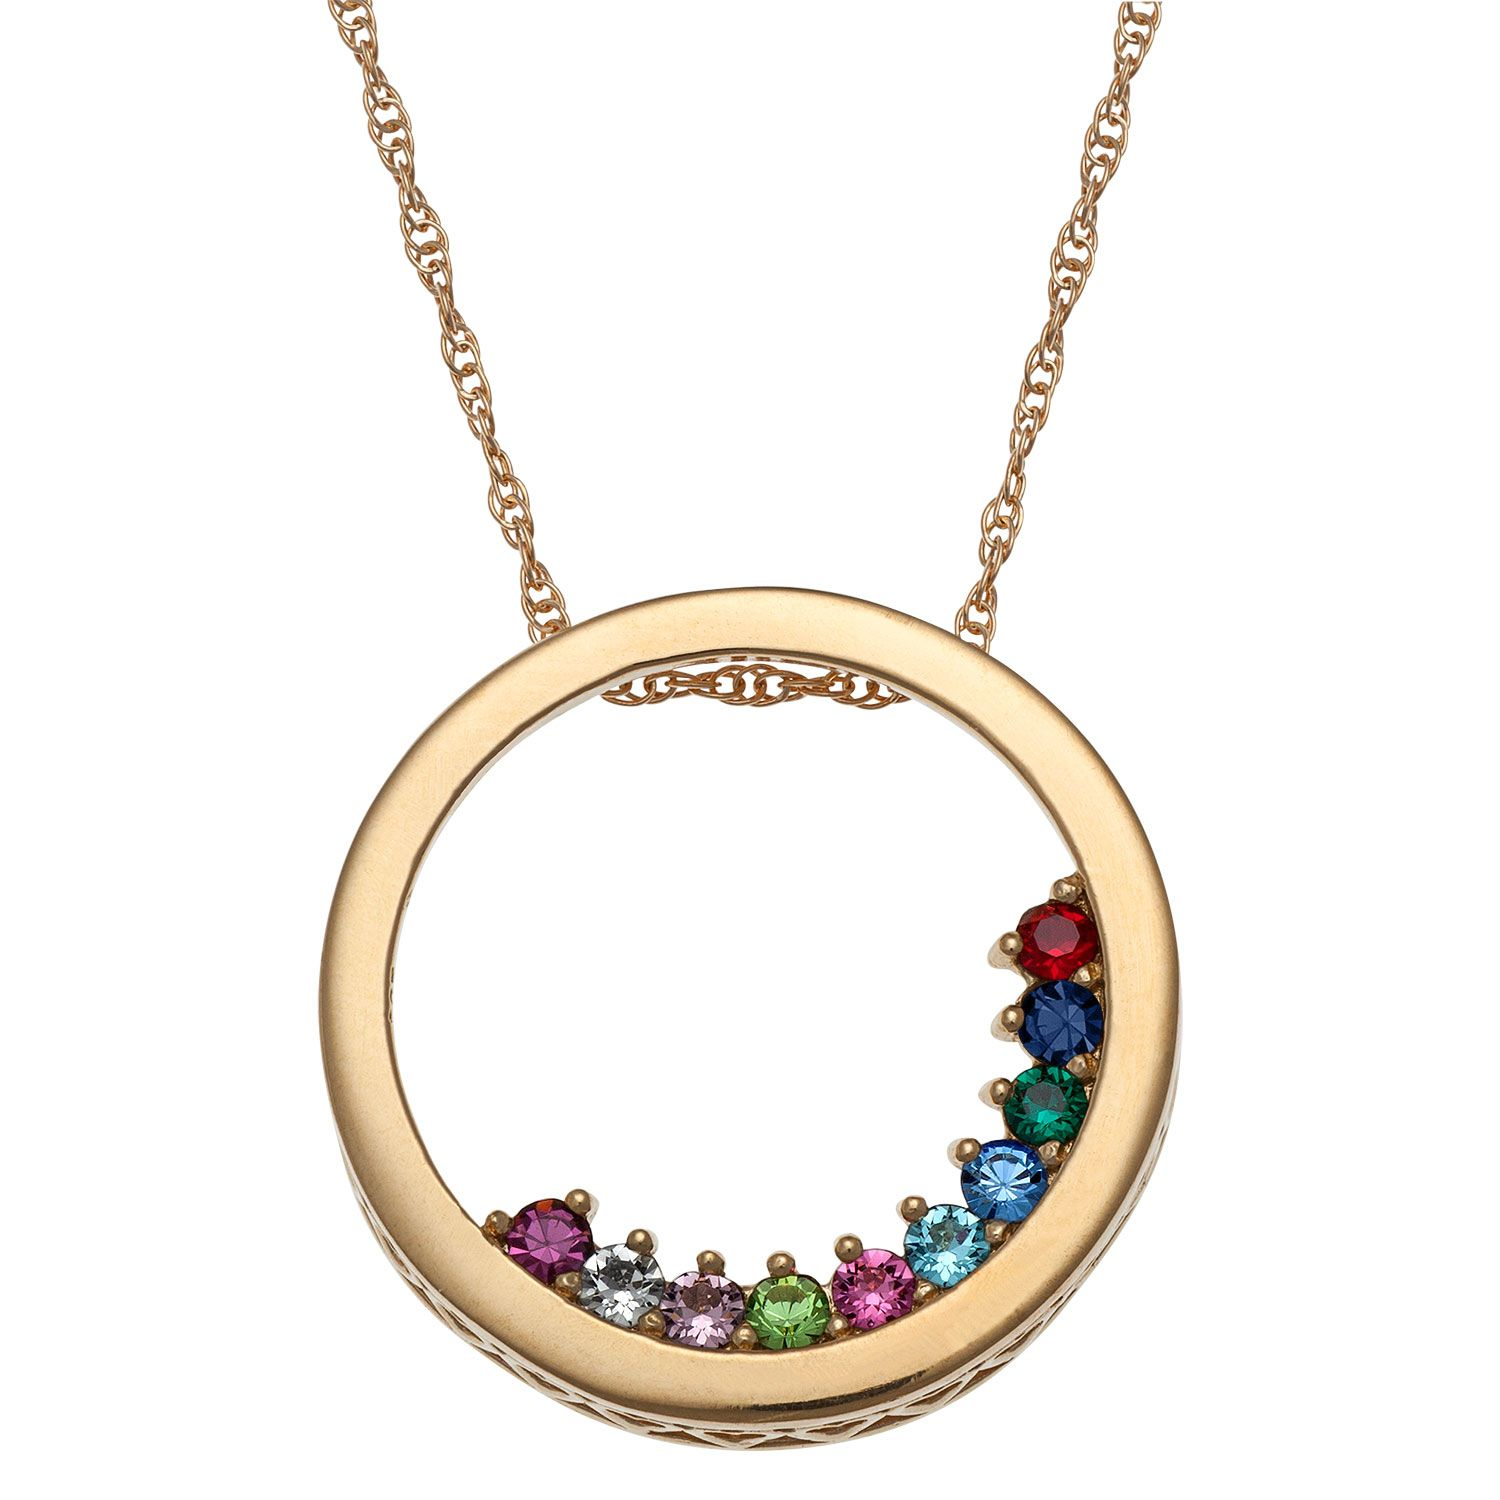 This gold over sterling mothers birthstone necklace is a chic and this gold over sterling mothers birthstone necklace is a chic and thoughtful aloadofball Images